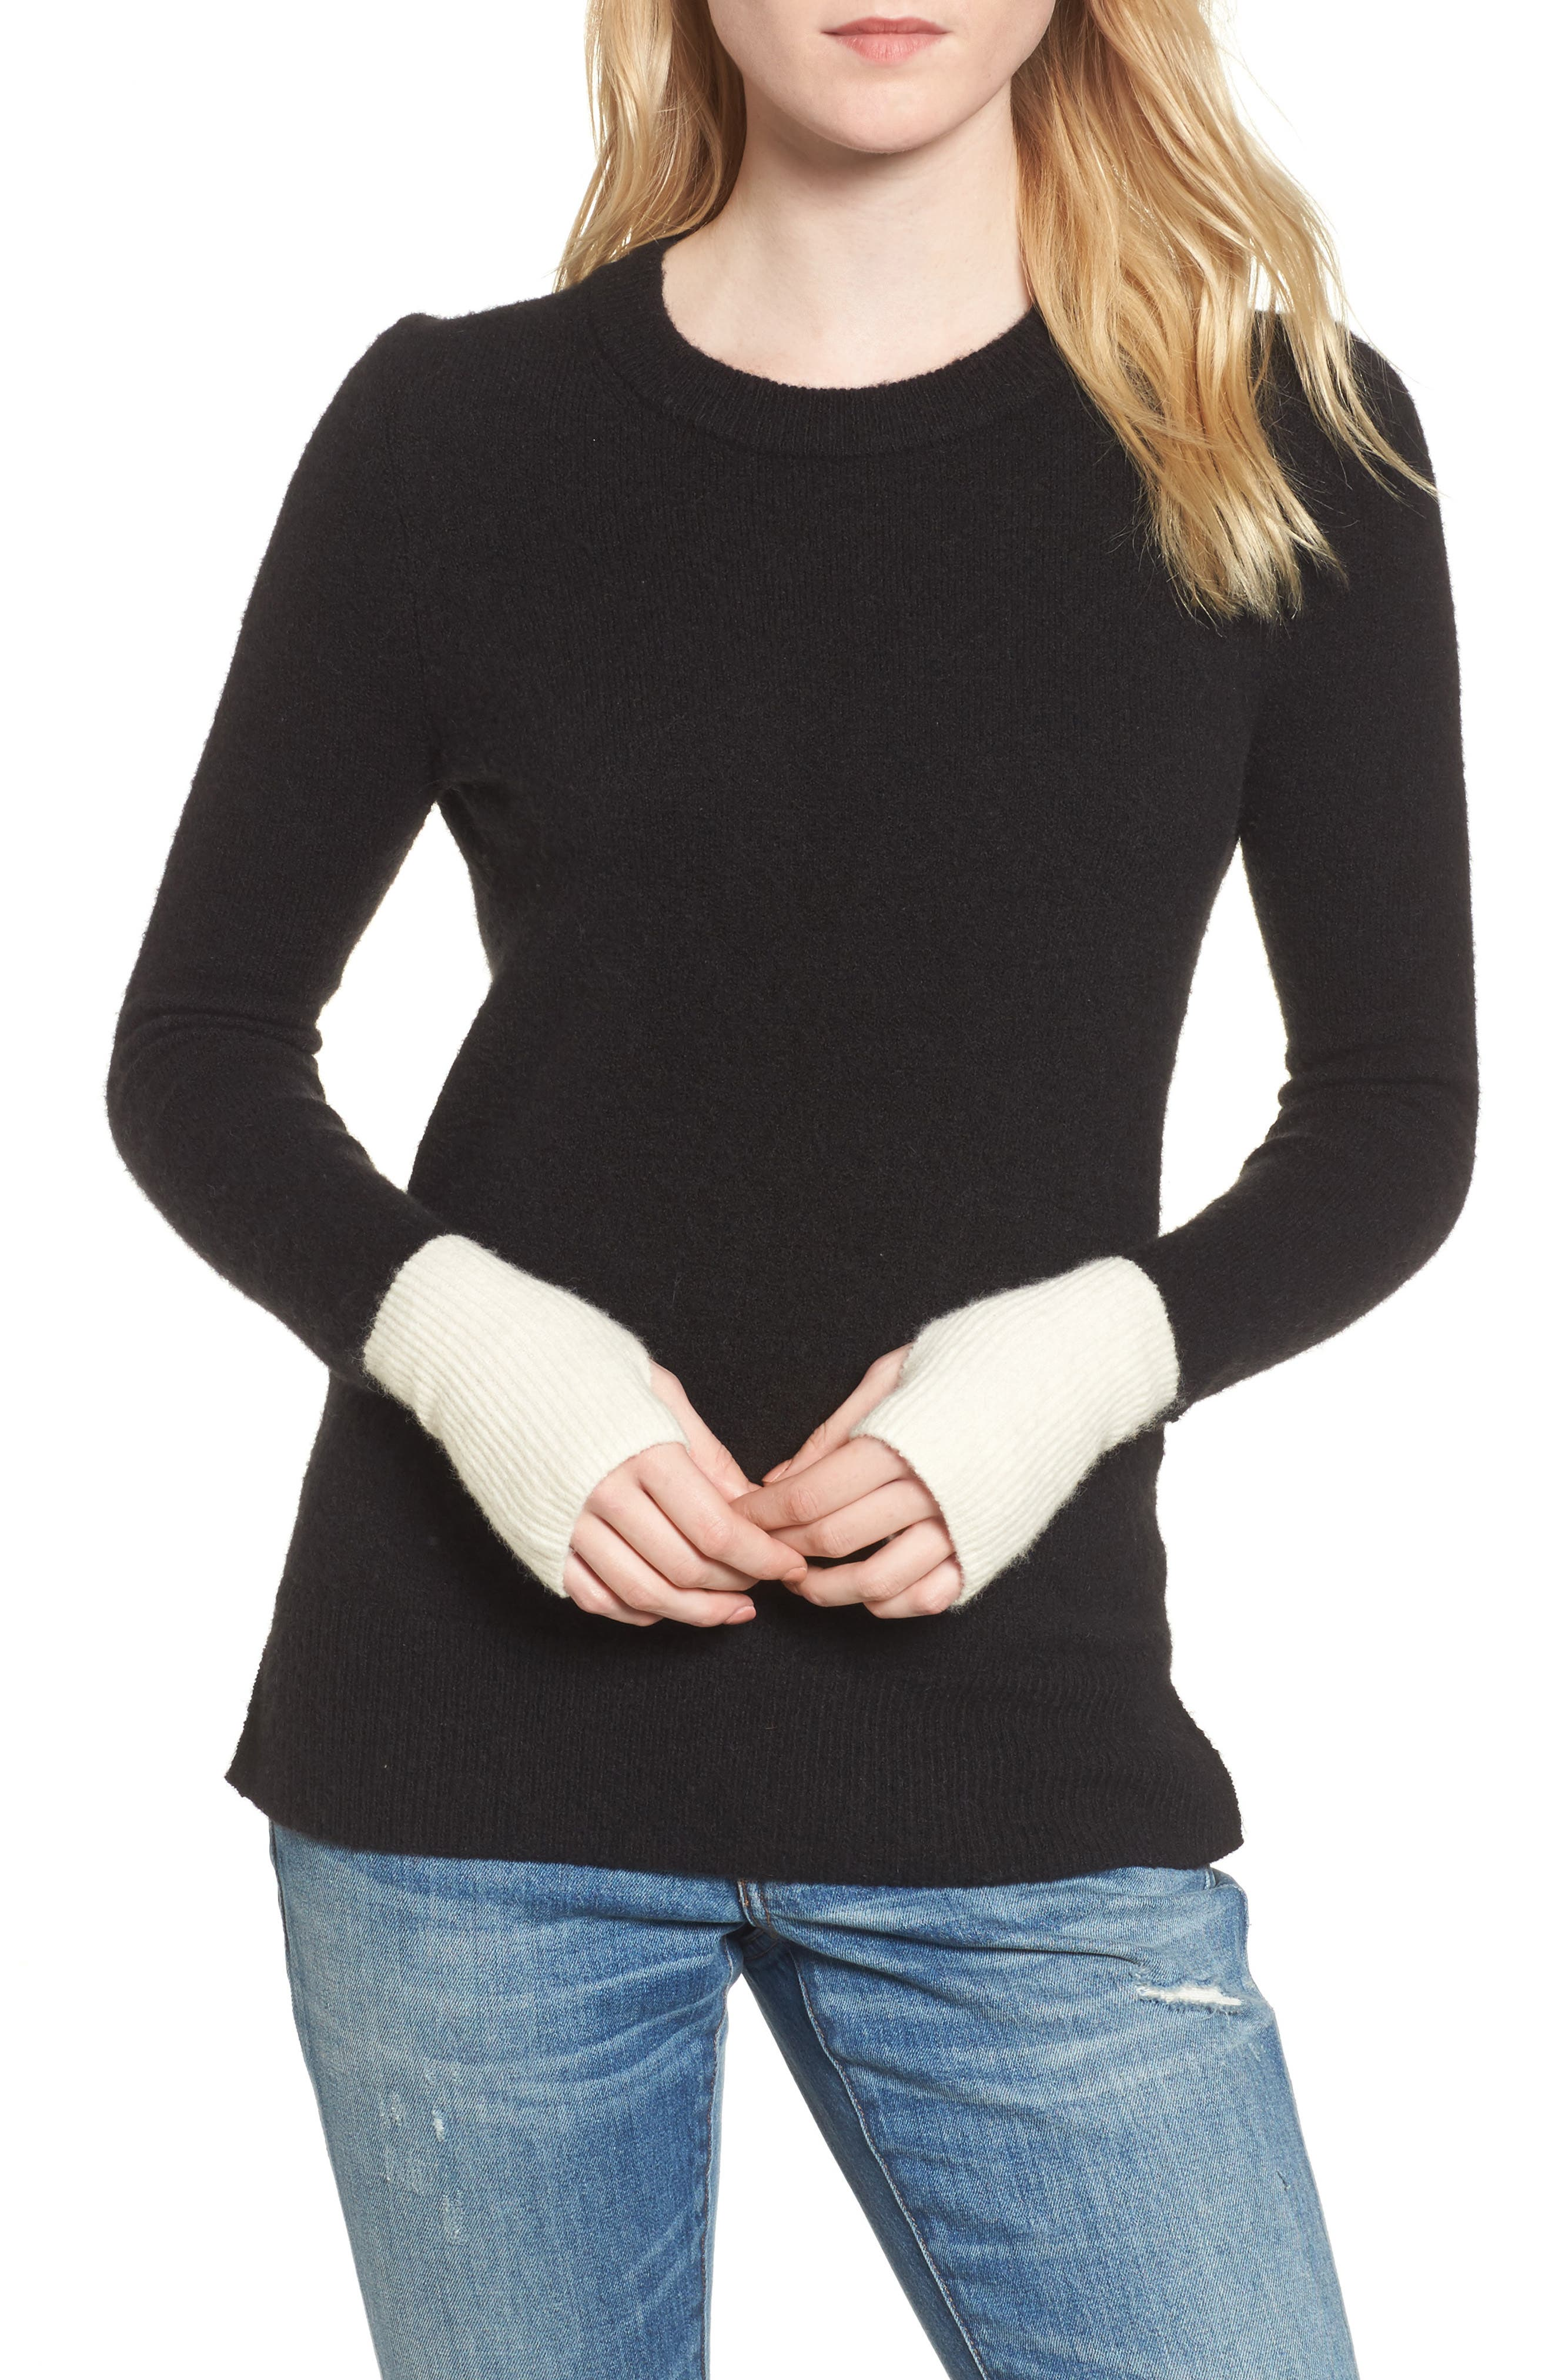 Fremont Colorblock Pullover Sweater,                             Main thumbnail 1, color,